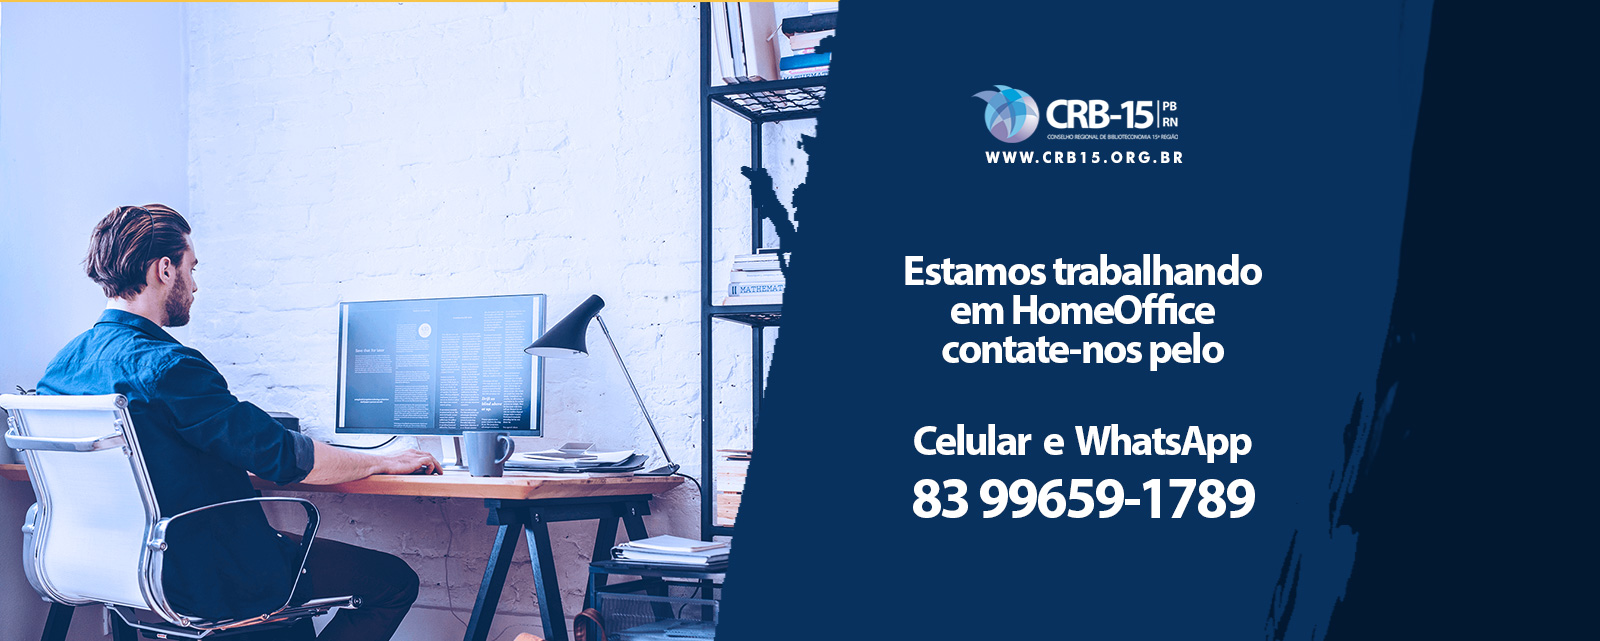 home-office-crb